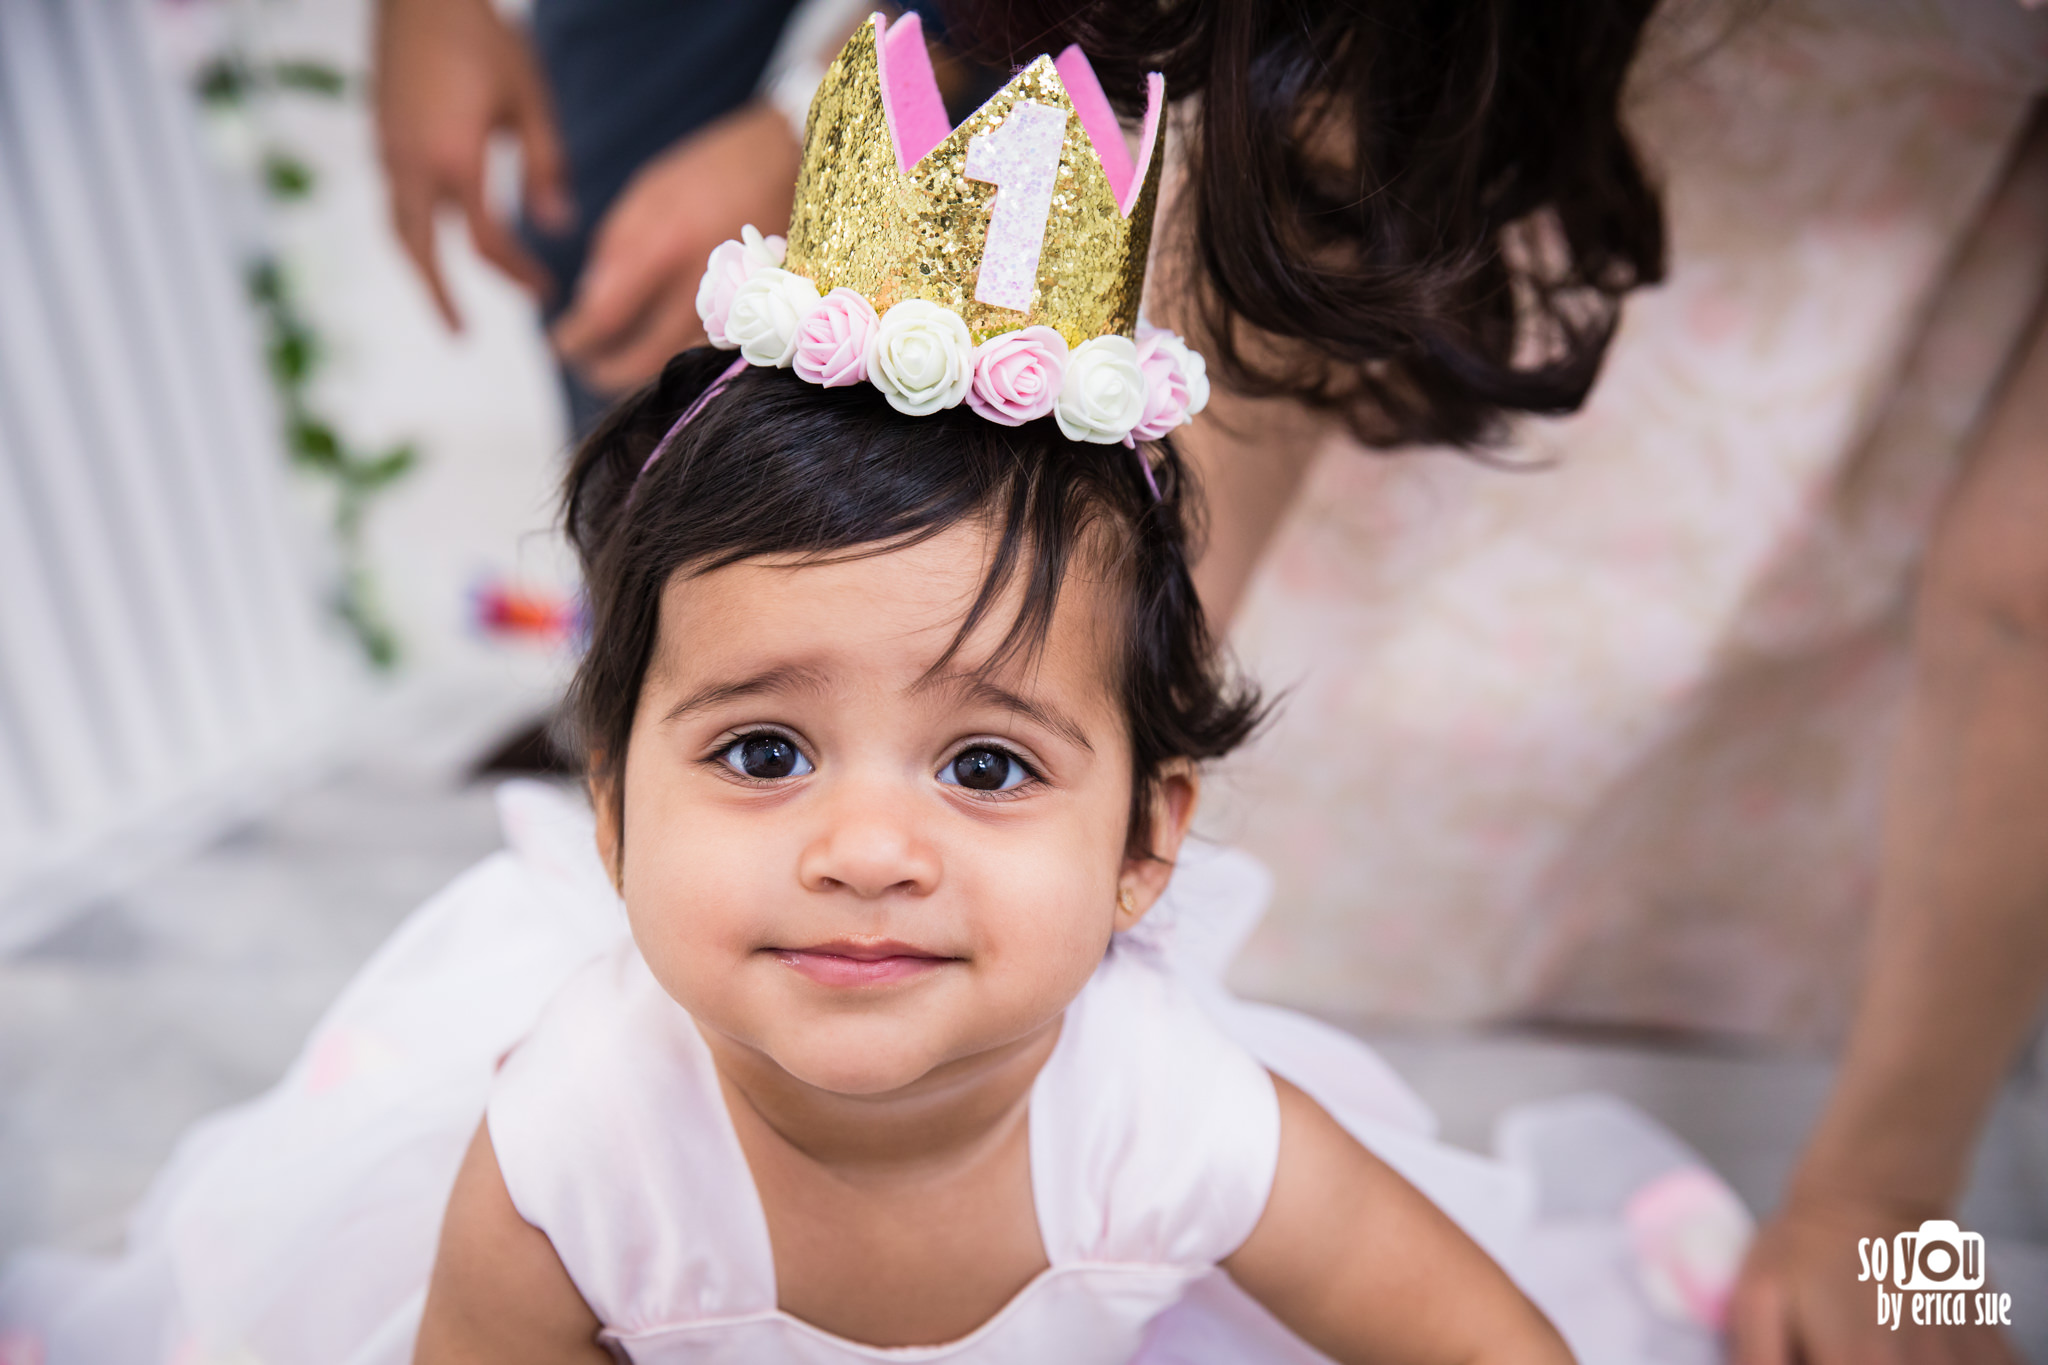 so-you-by-erica-sue-first-birthday-photographer-pembroke-pines-5667.jpg